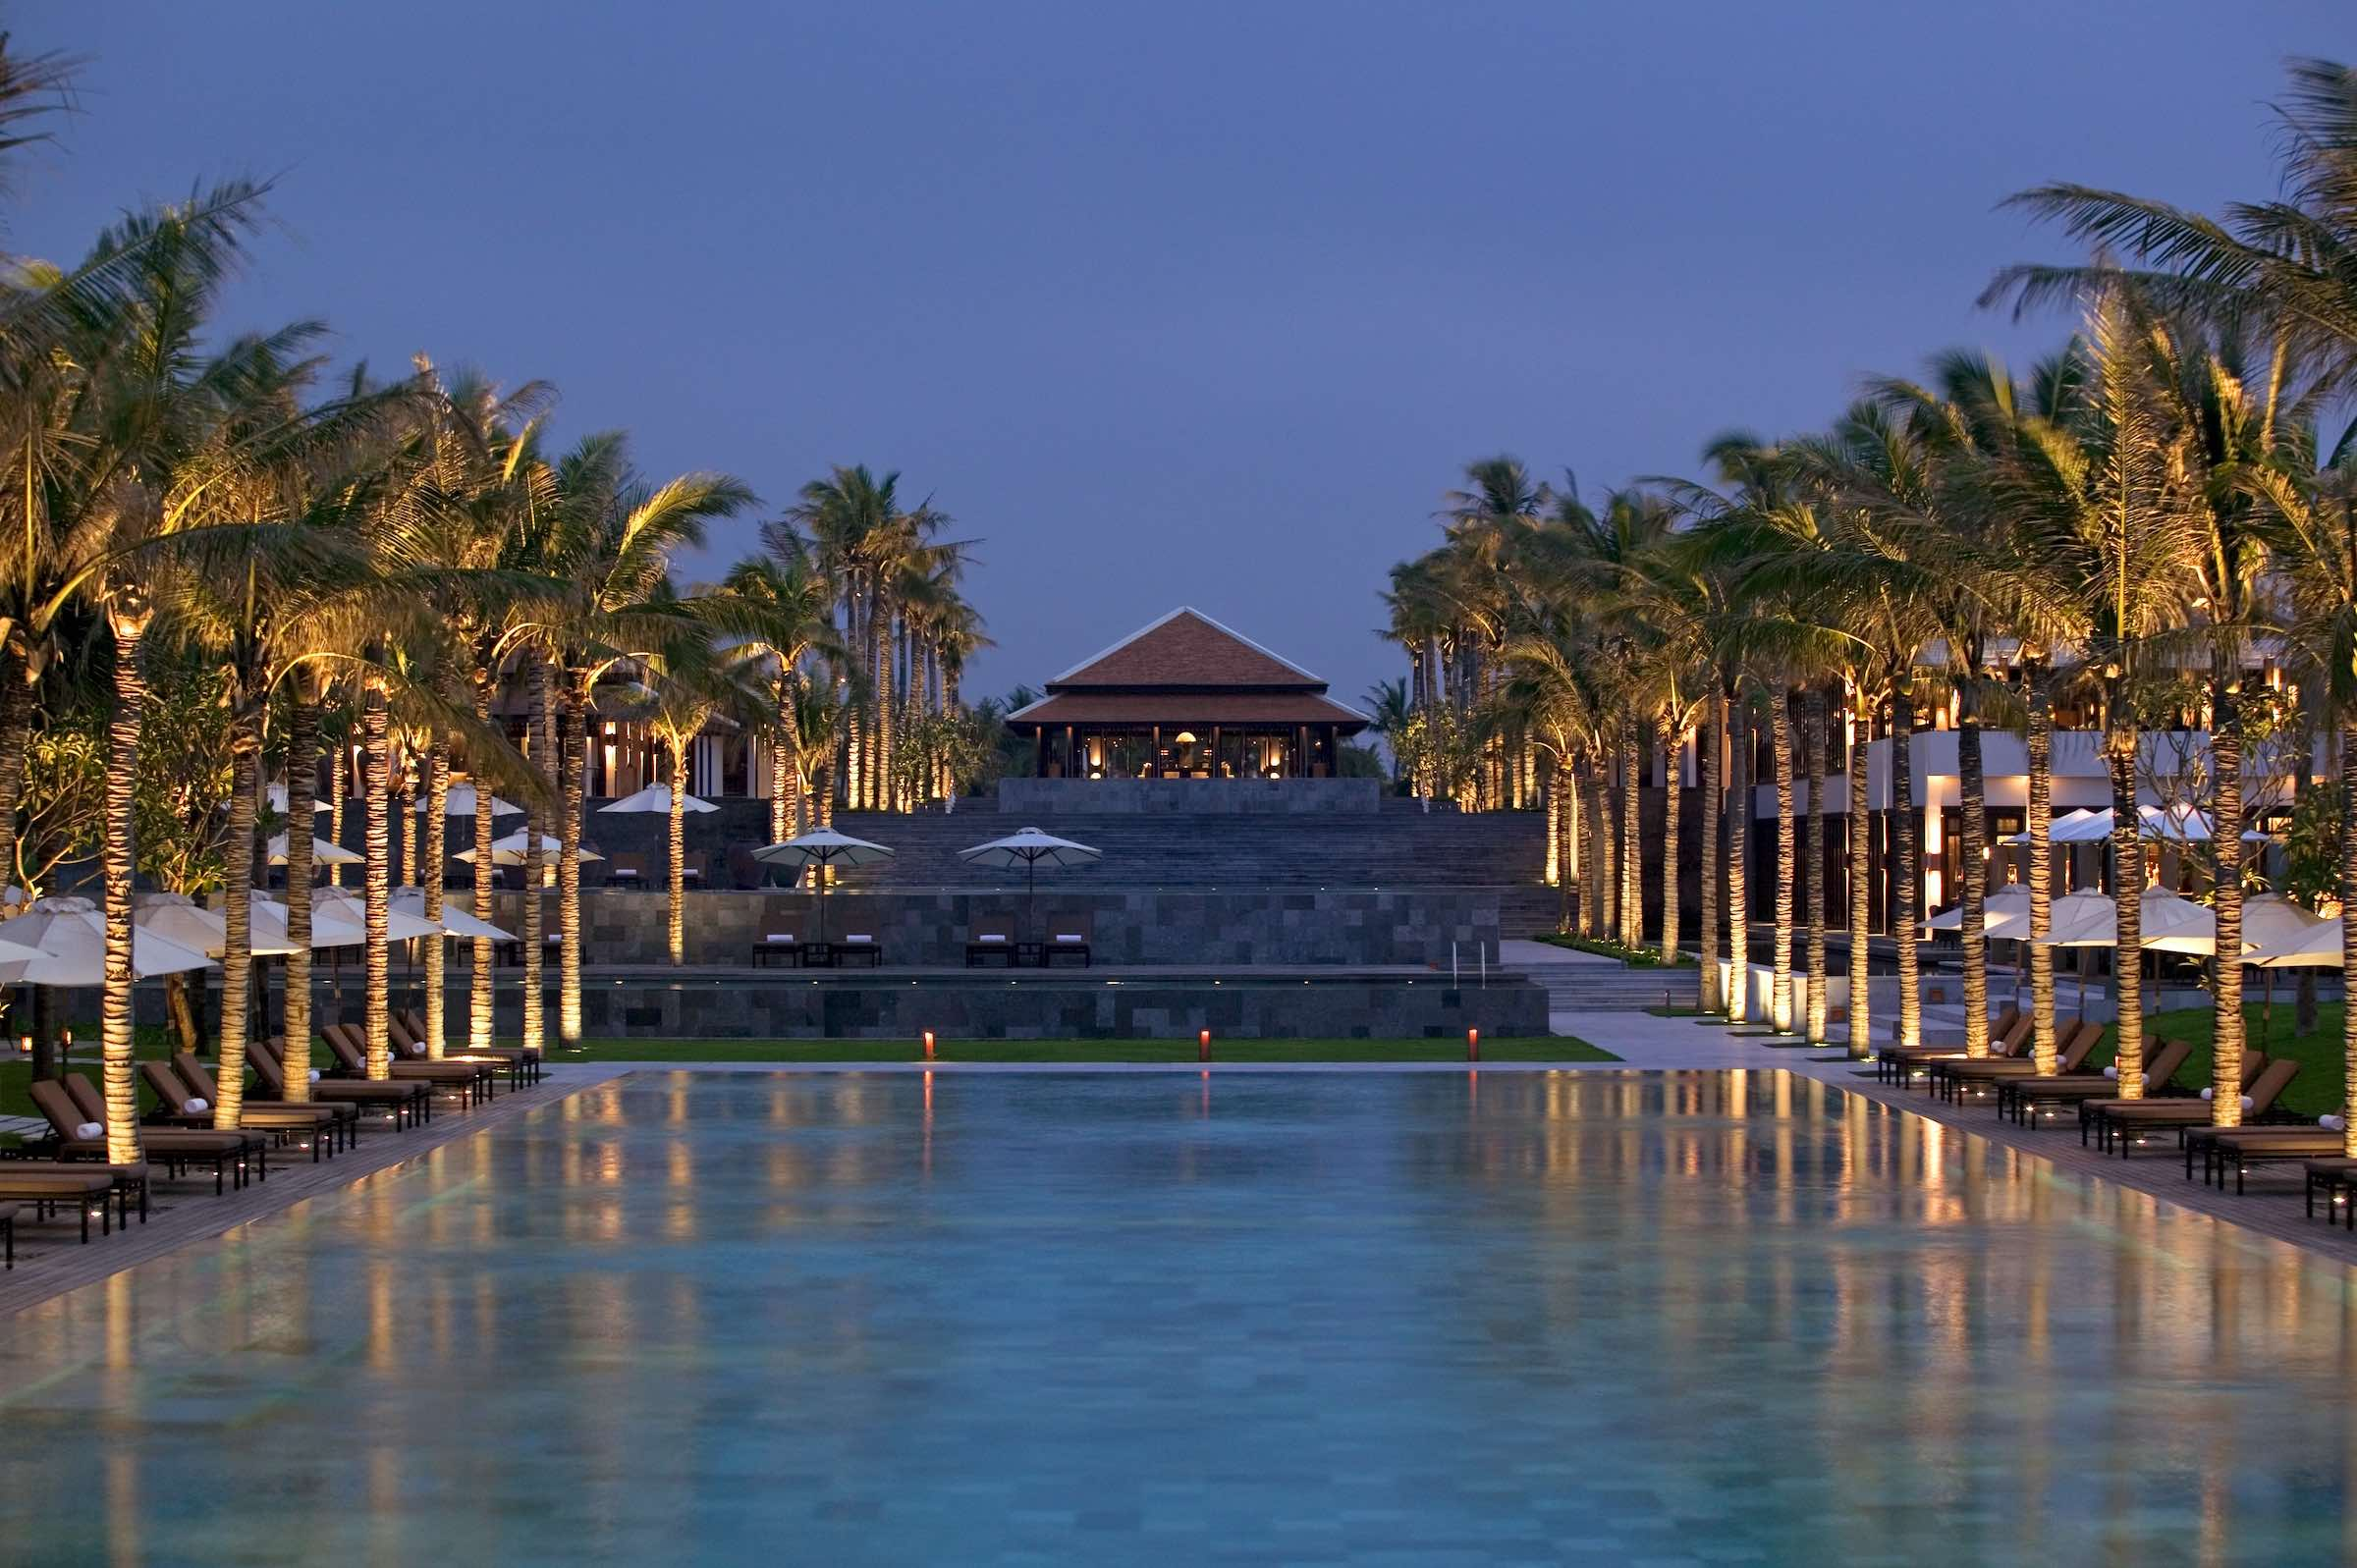 The Most Expensive Resorts in Vietnam Aren't Where You'd Expect - Vietcetera